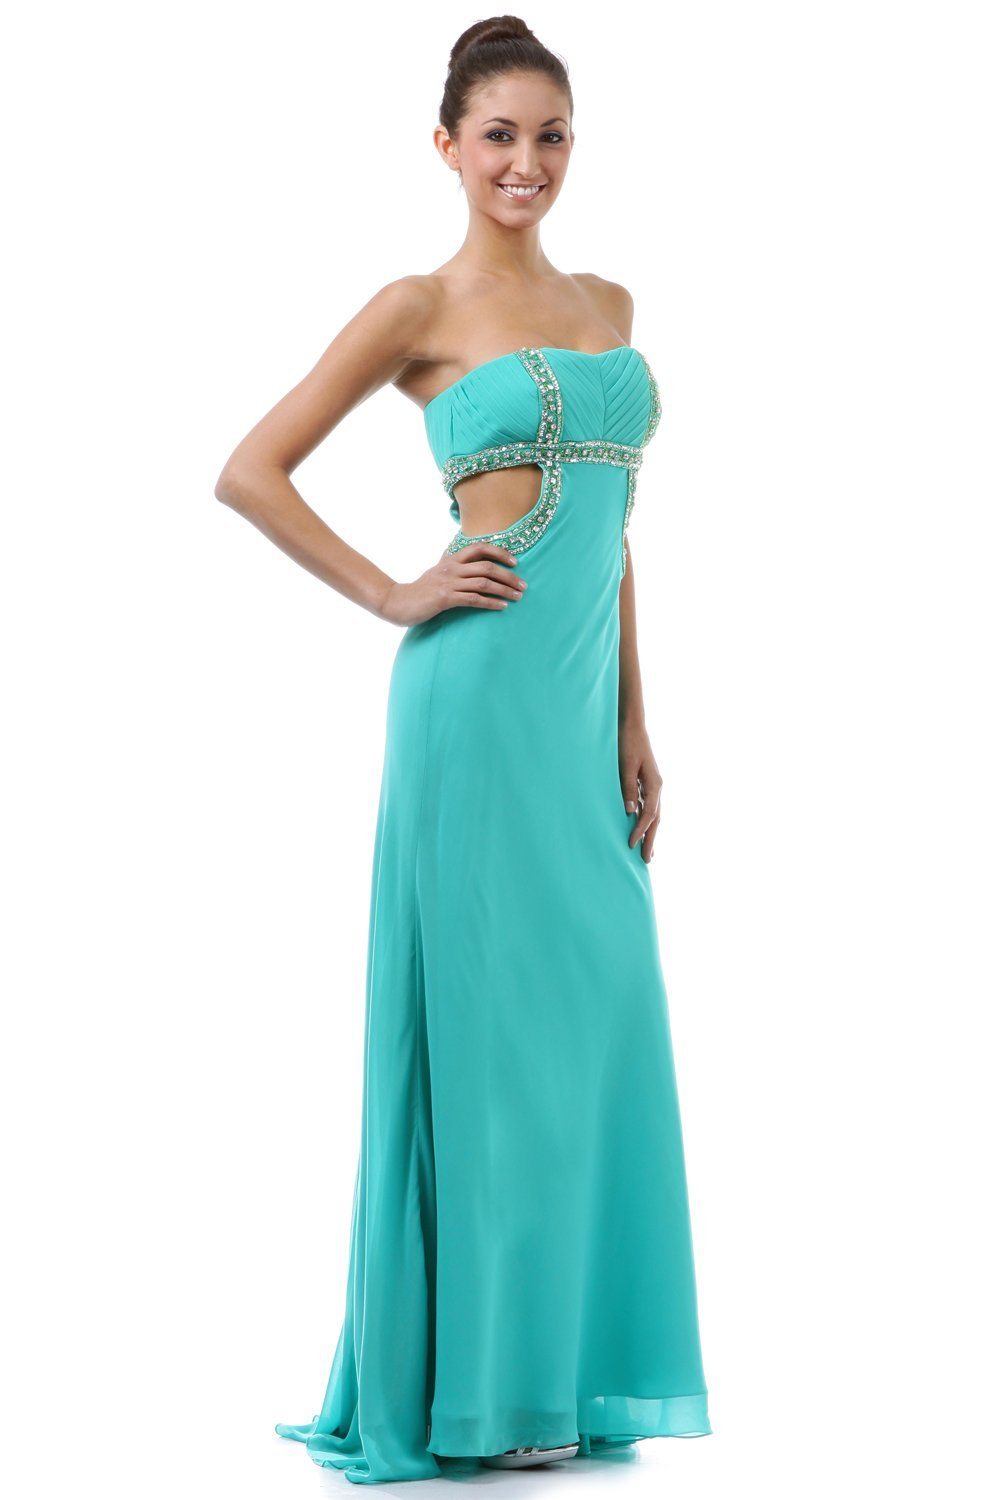 066f86620e0 The Prom Dress Shop - Lela London - Travel